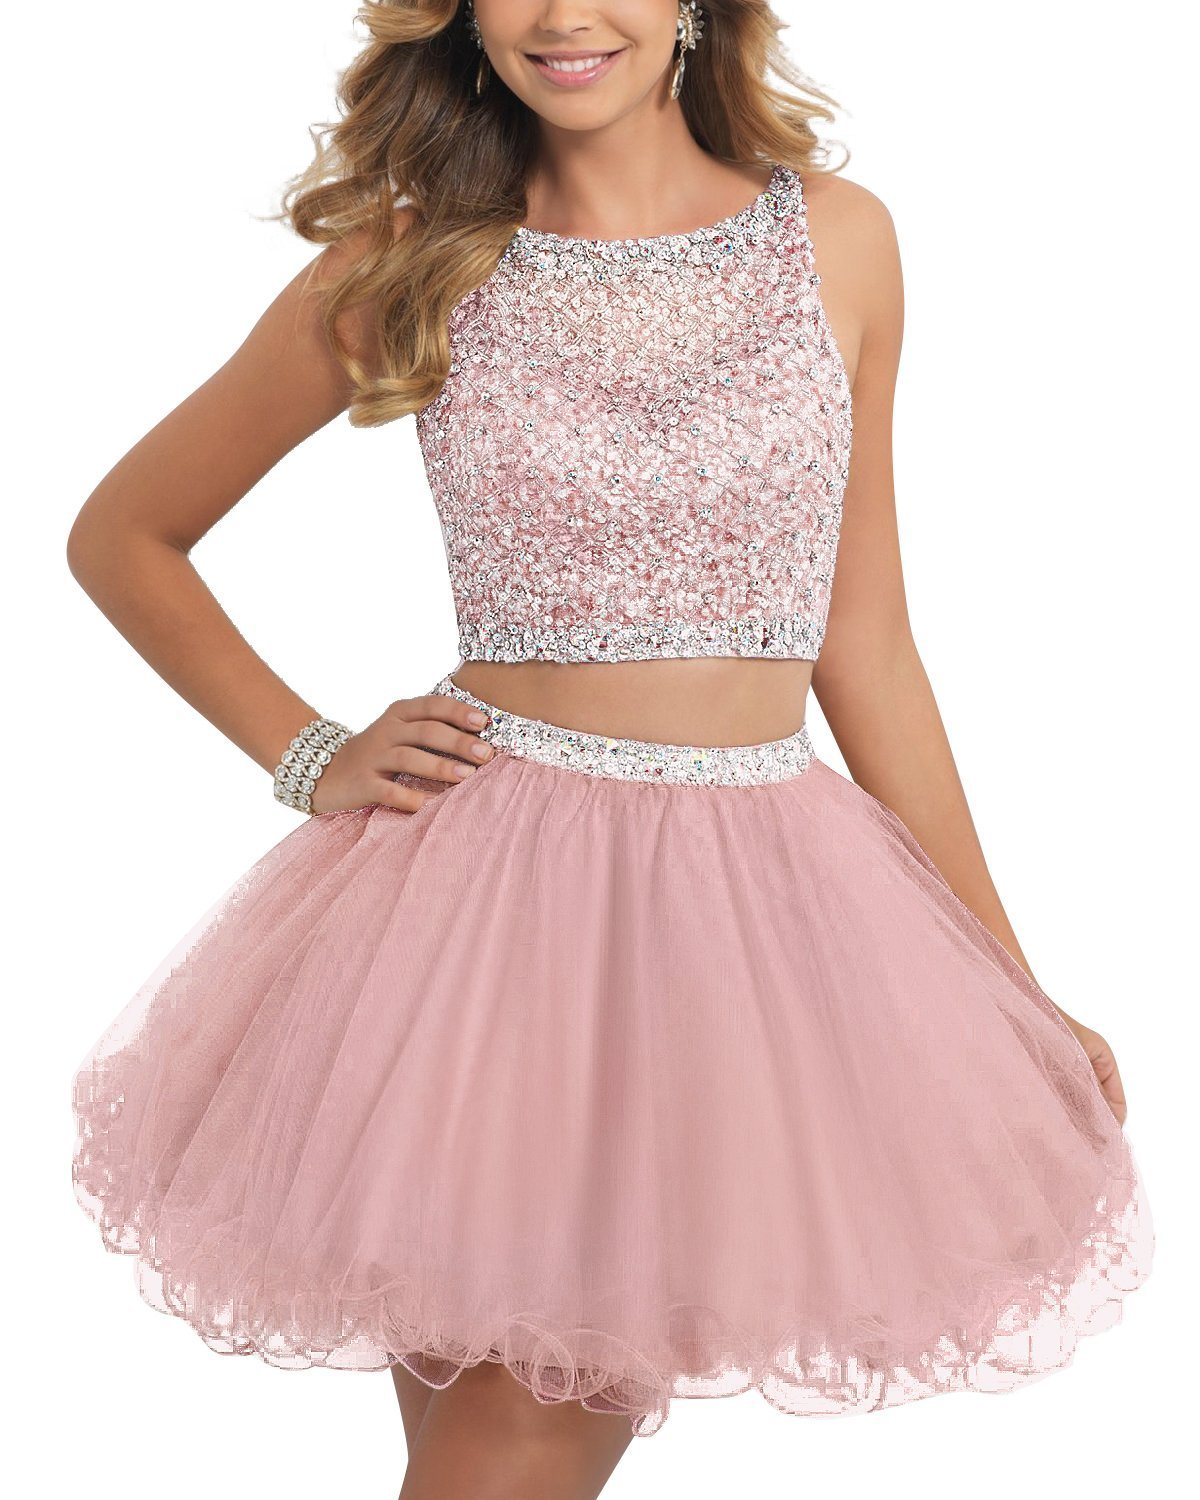 TANGFUTI Two Piece Homecoming Dresses Short Beaded Tulle Formal Prom Gowns 010 Blush US6